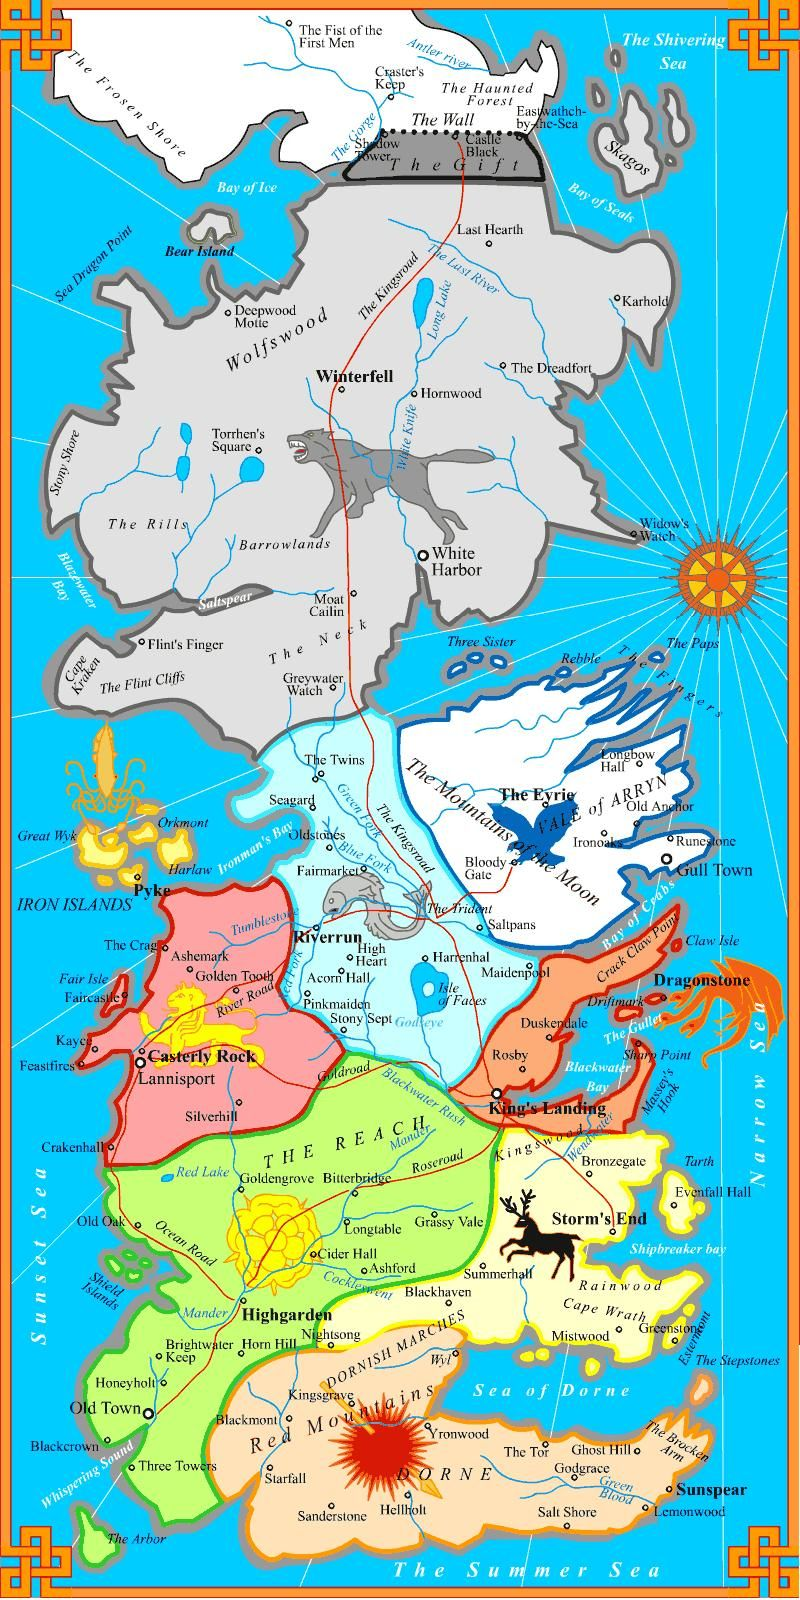 The best printable map of westeros not too detailed to print on one the best printable map of westeros not too detailed to print on one page but has more info than the one in the books gumiabroncs Image collections